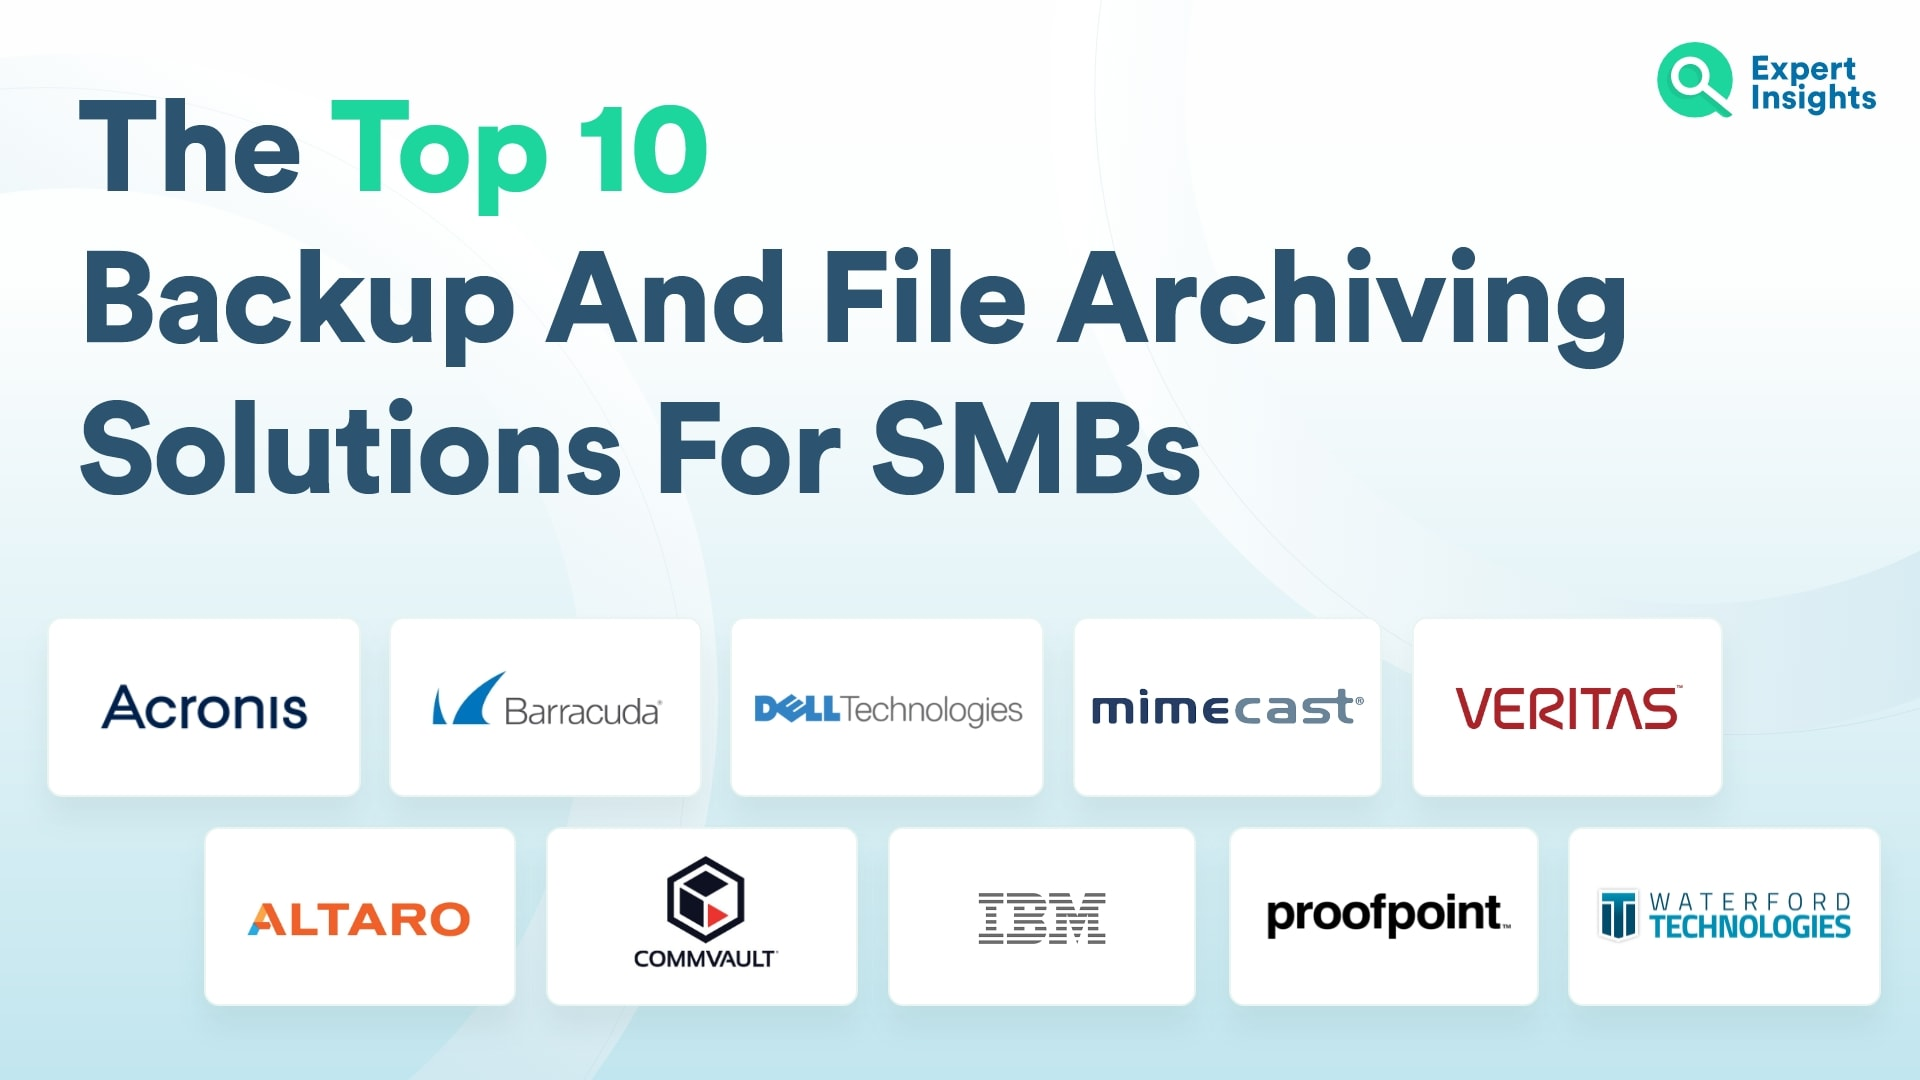 Top 10 Backup And File Archiving Solutions For SMBs - Expert Insights